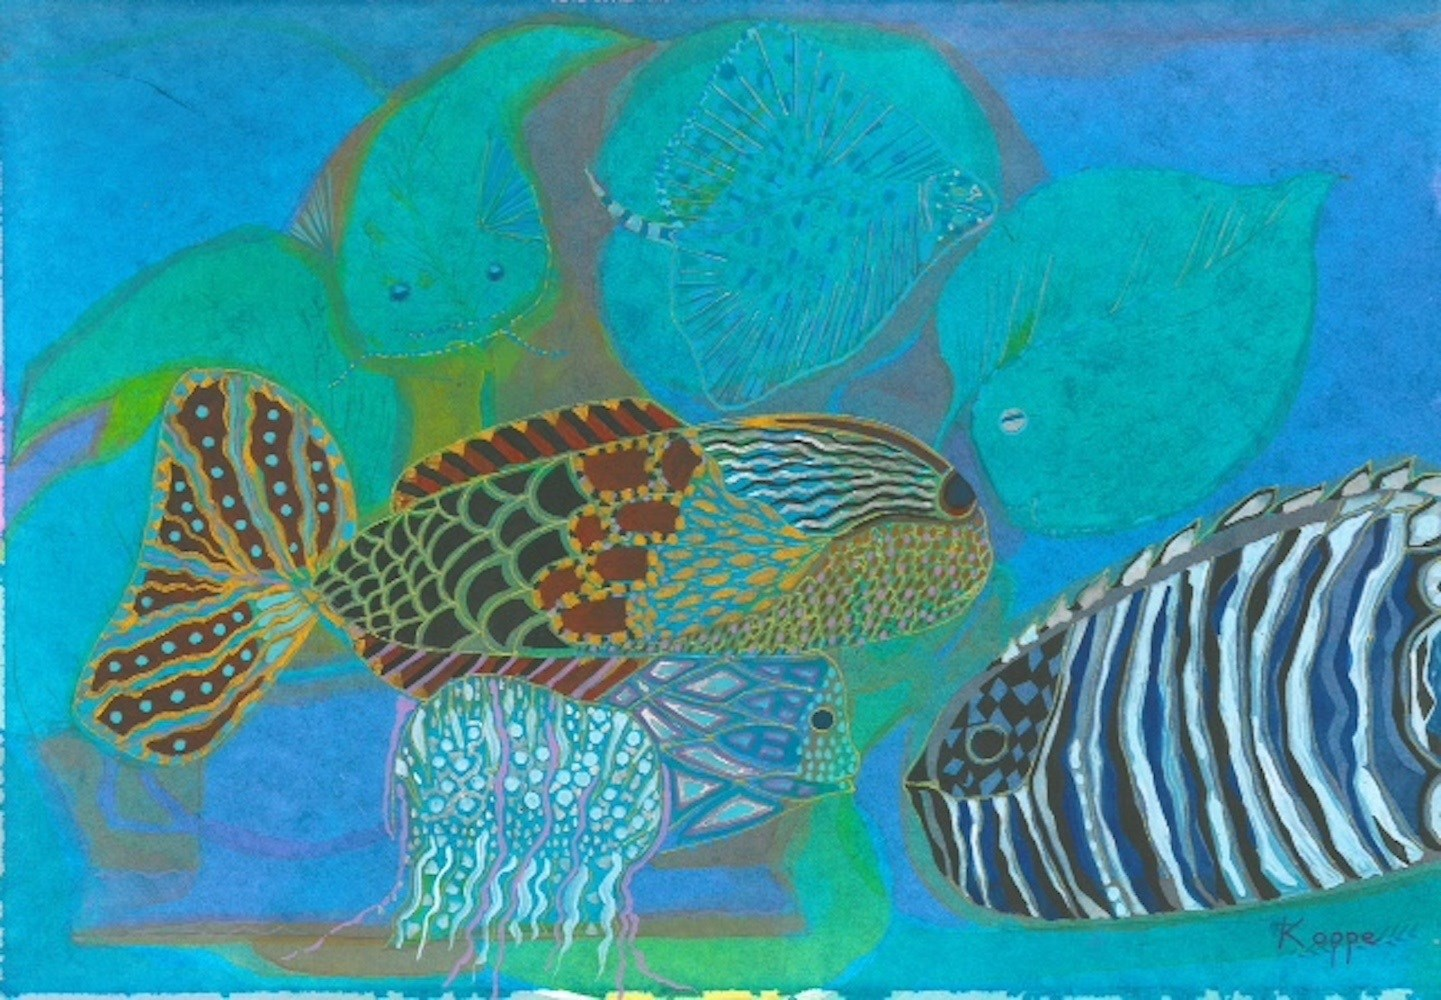 Cat Fish, original Animals Watercolor Painting by Penny Koppe